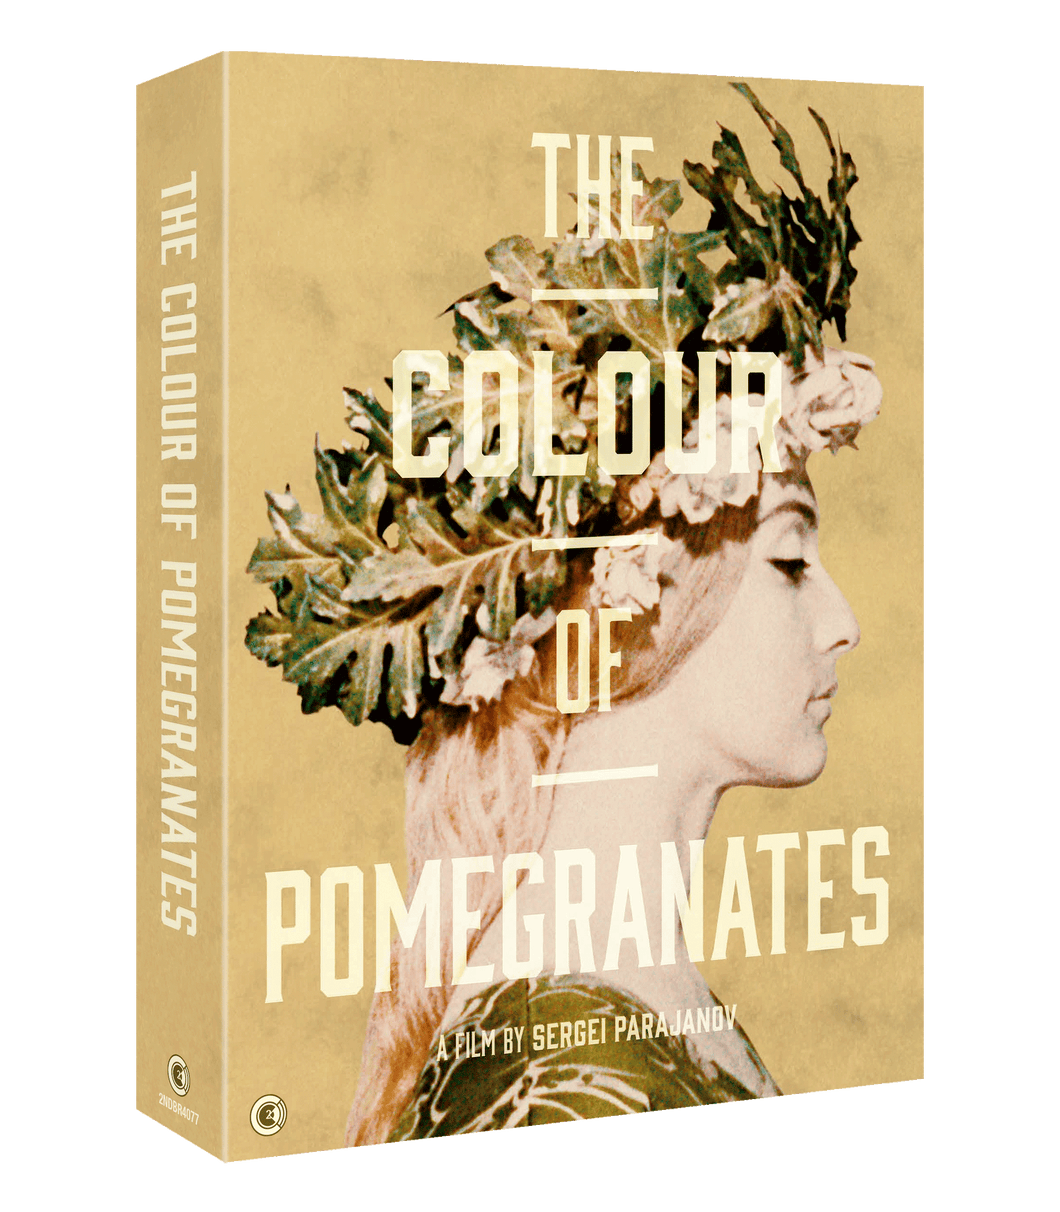 The Colour of Pomegranates Limited Edition Box Set - OUT OF PRINT